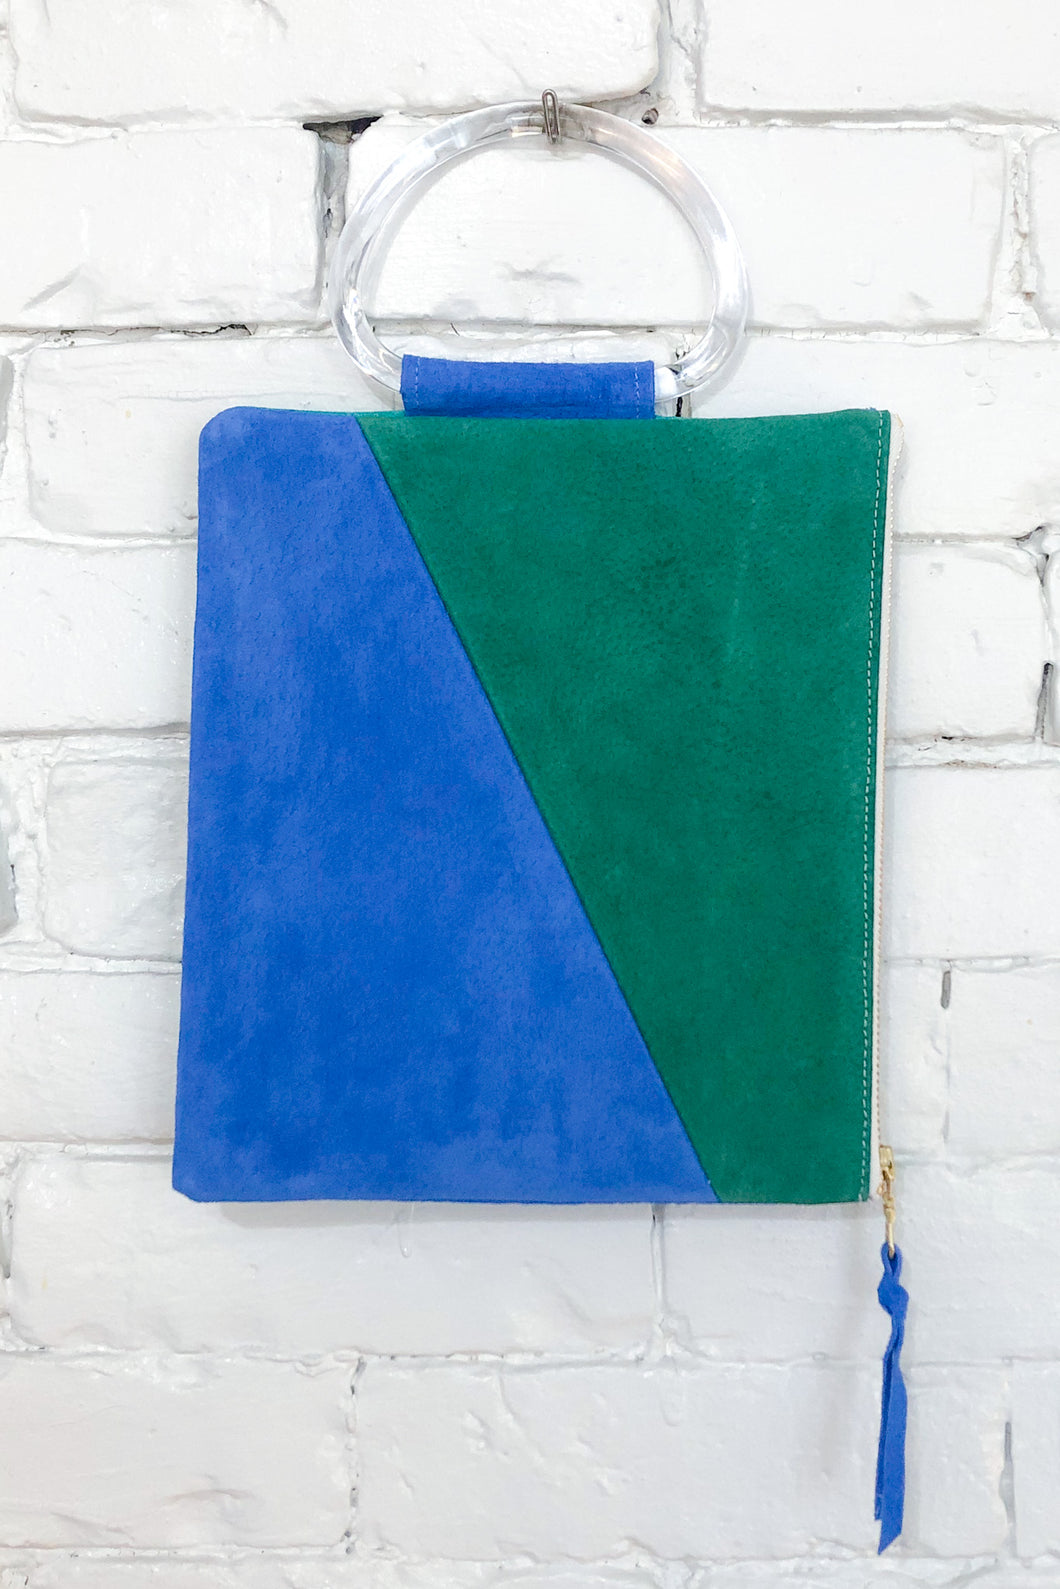 The Diagonal (Sky, Teal, and Spruce w/ Handle)